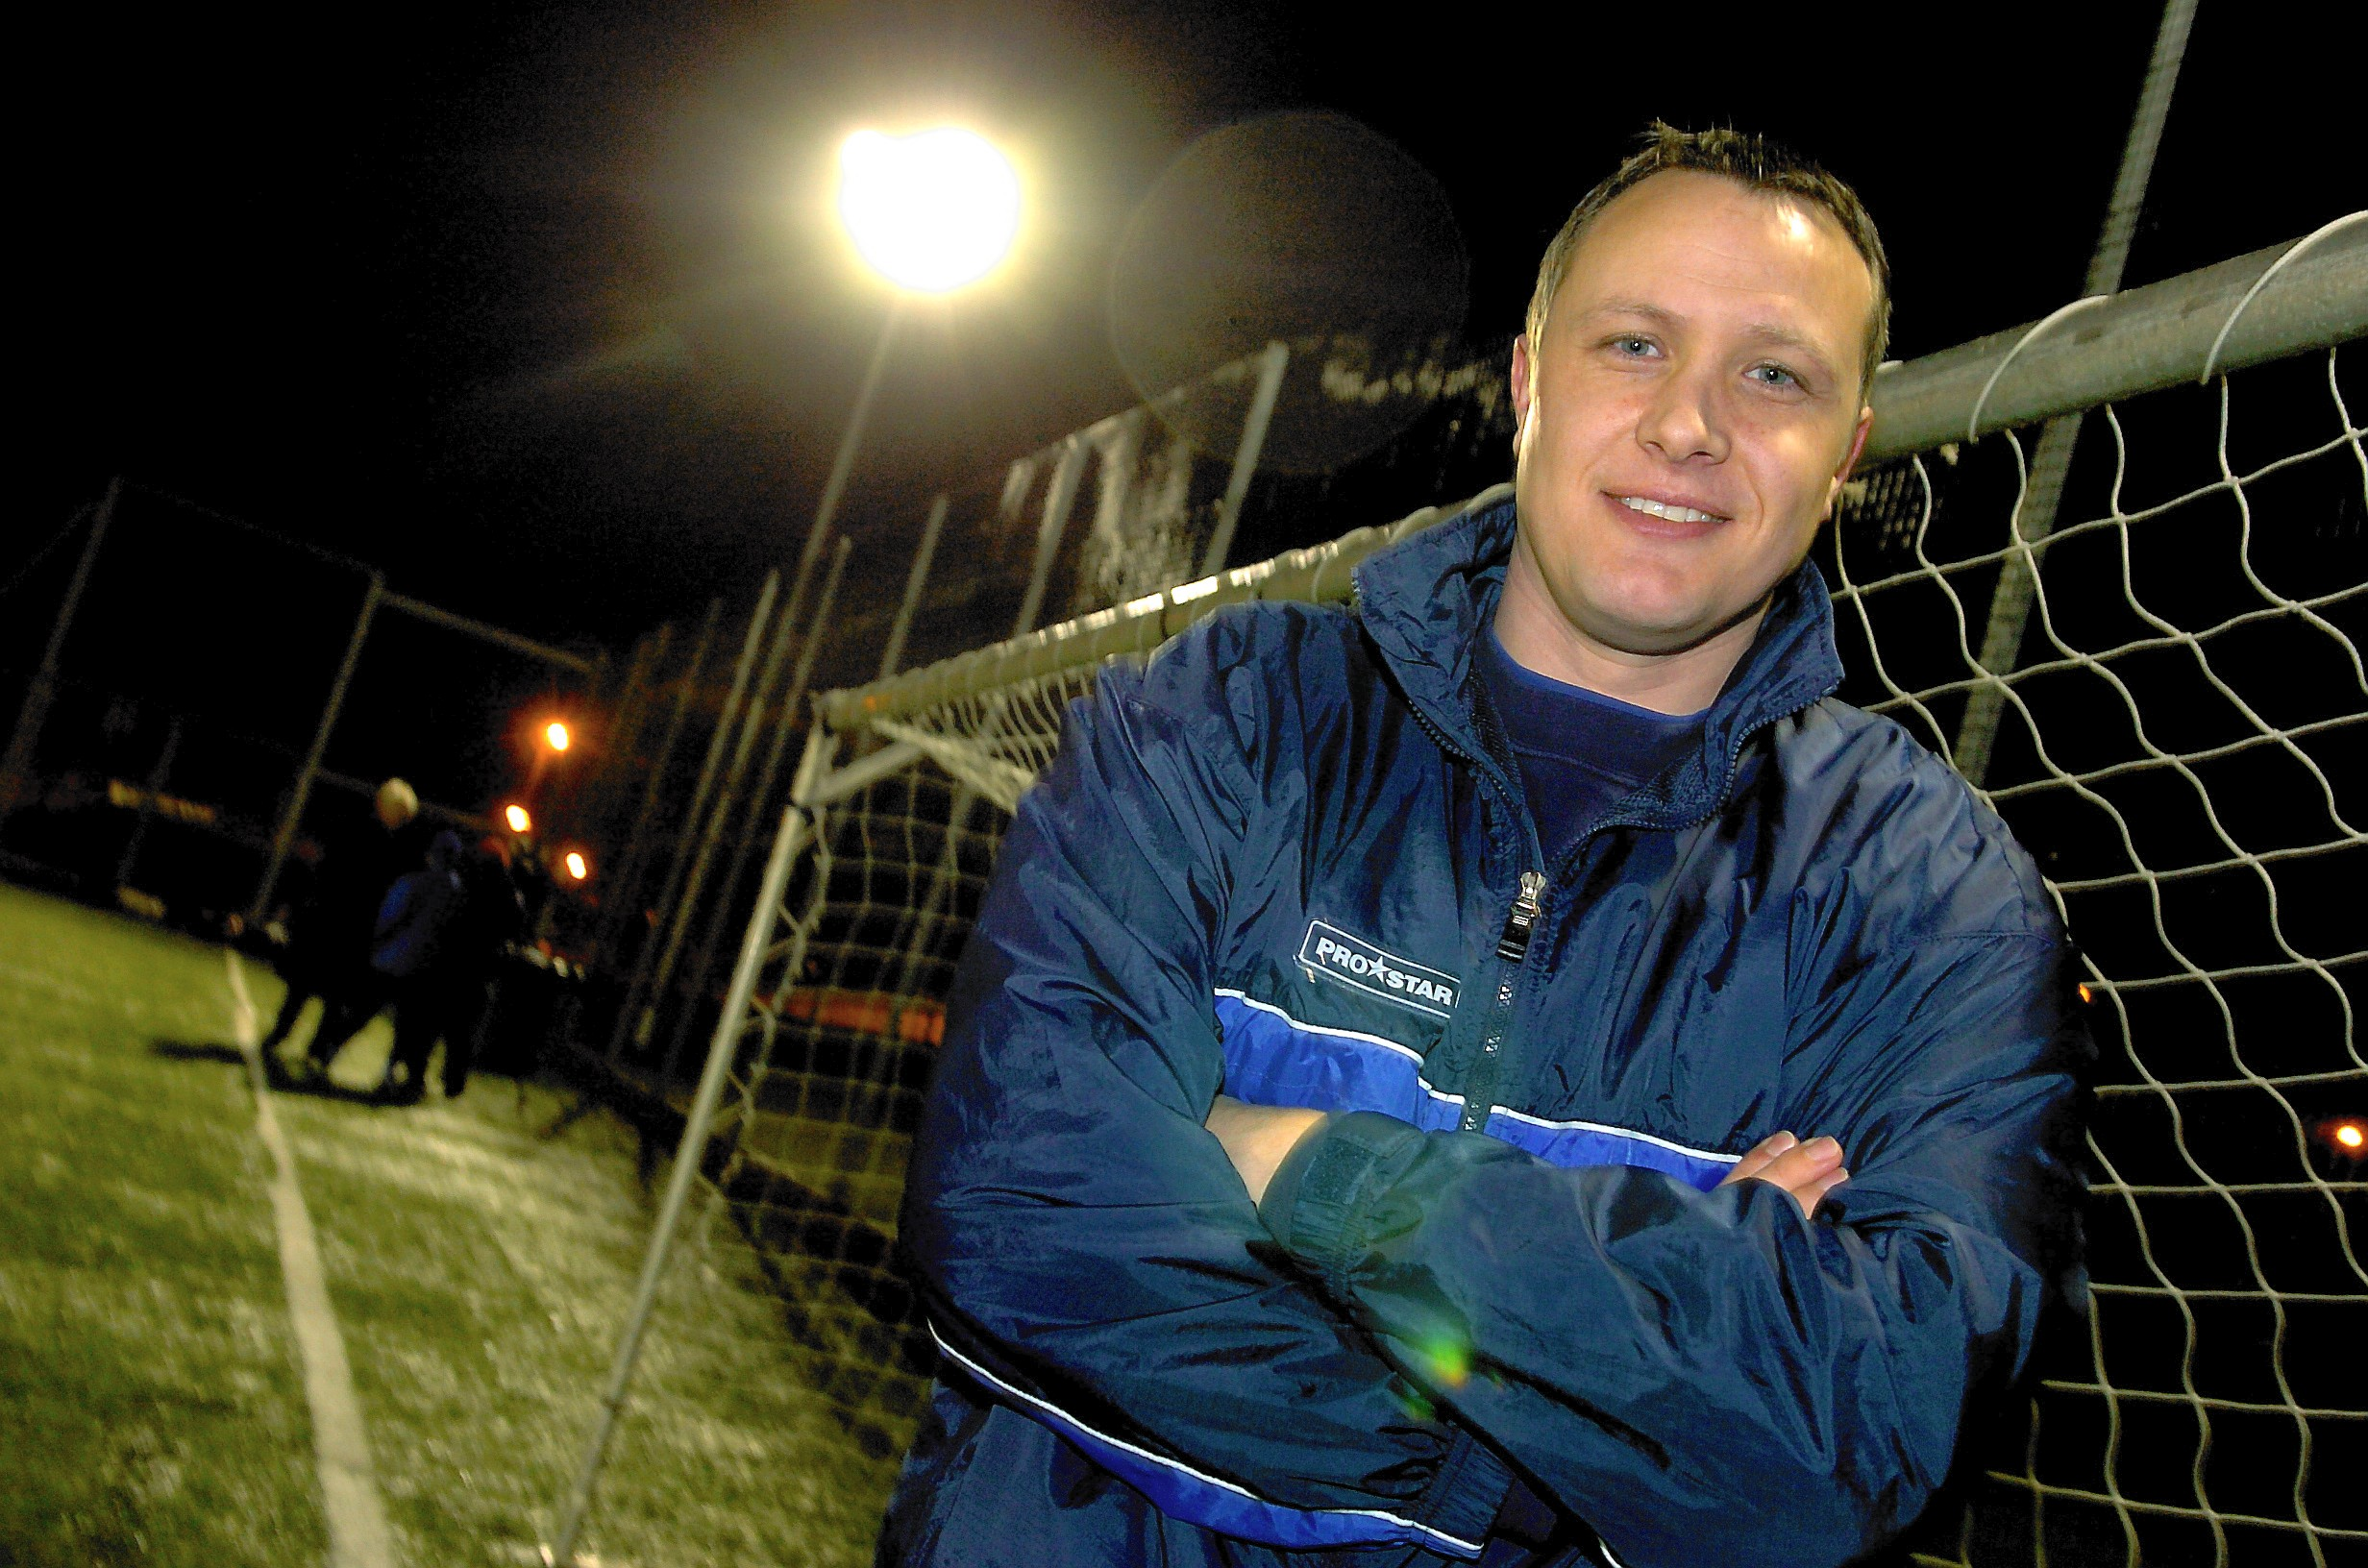 David Hagen played for Peterhead from 2004 to 2006